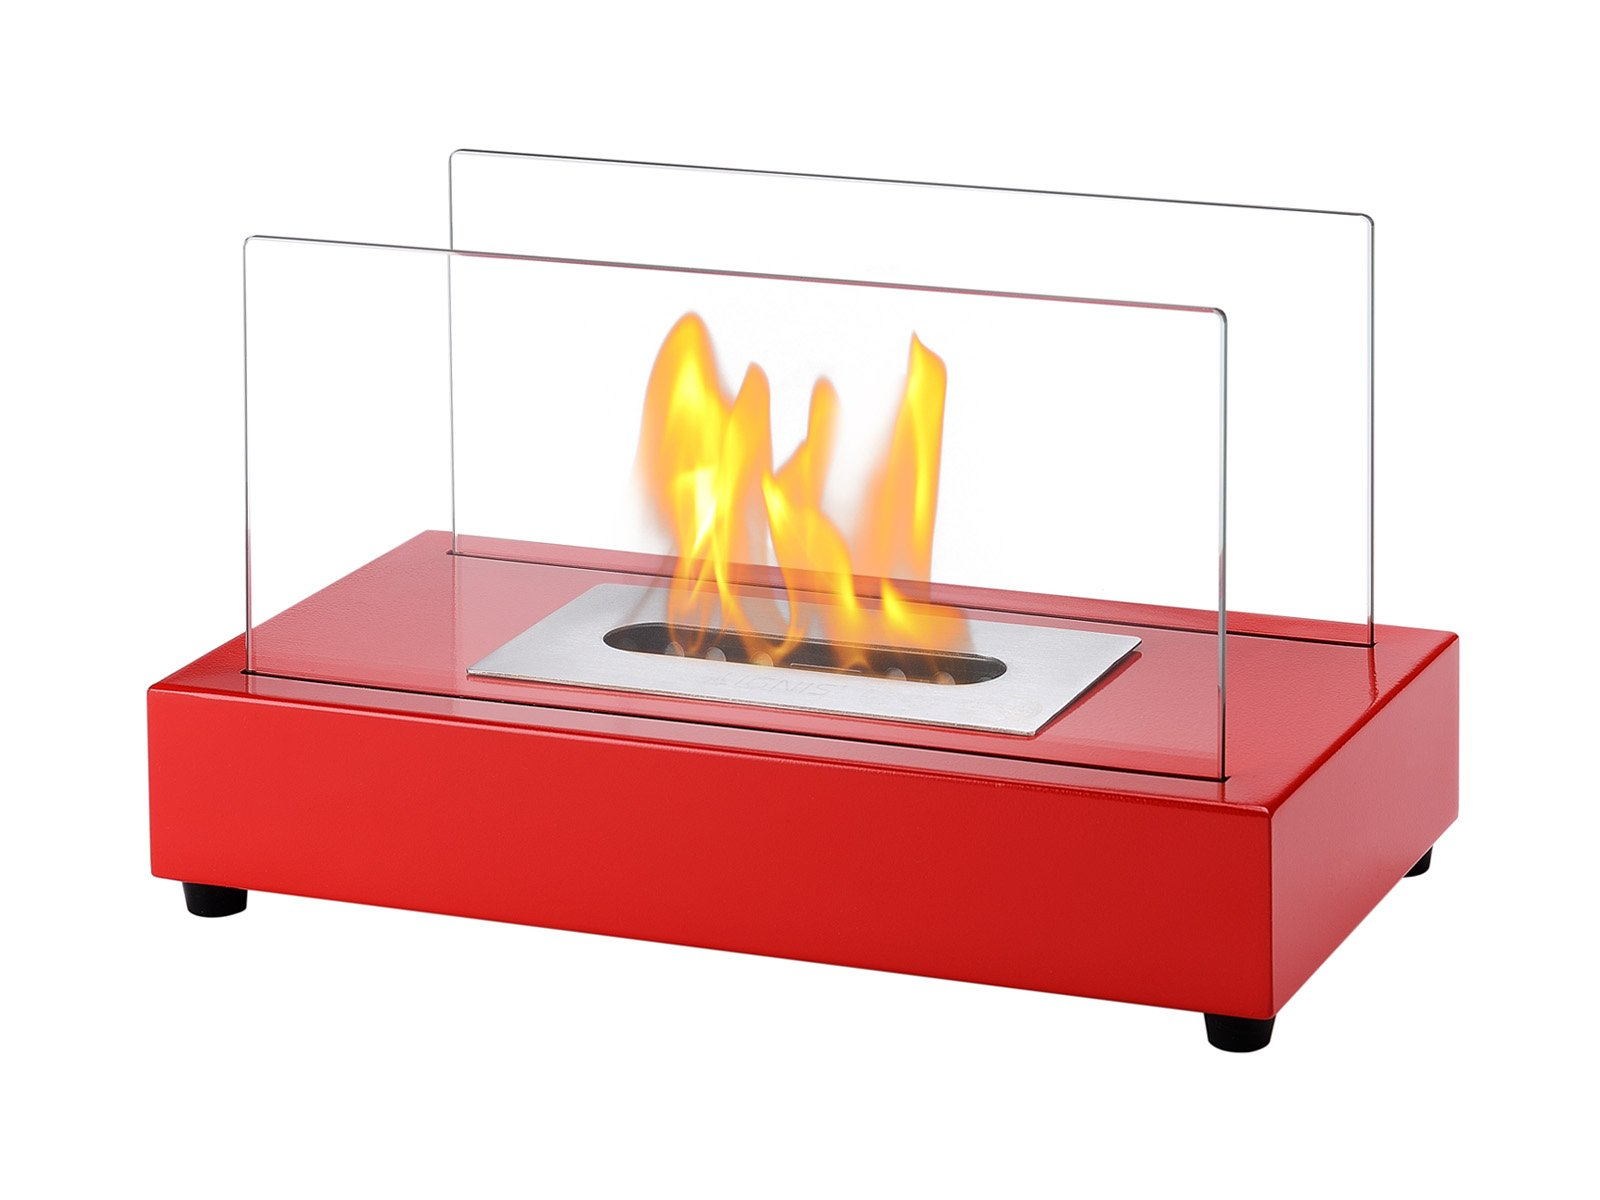 Ignis Portable Tabletop Ventless Bio Ethanol Fireplace - Tower (Red) by Ignis